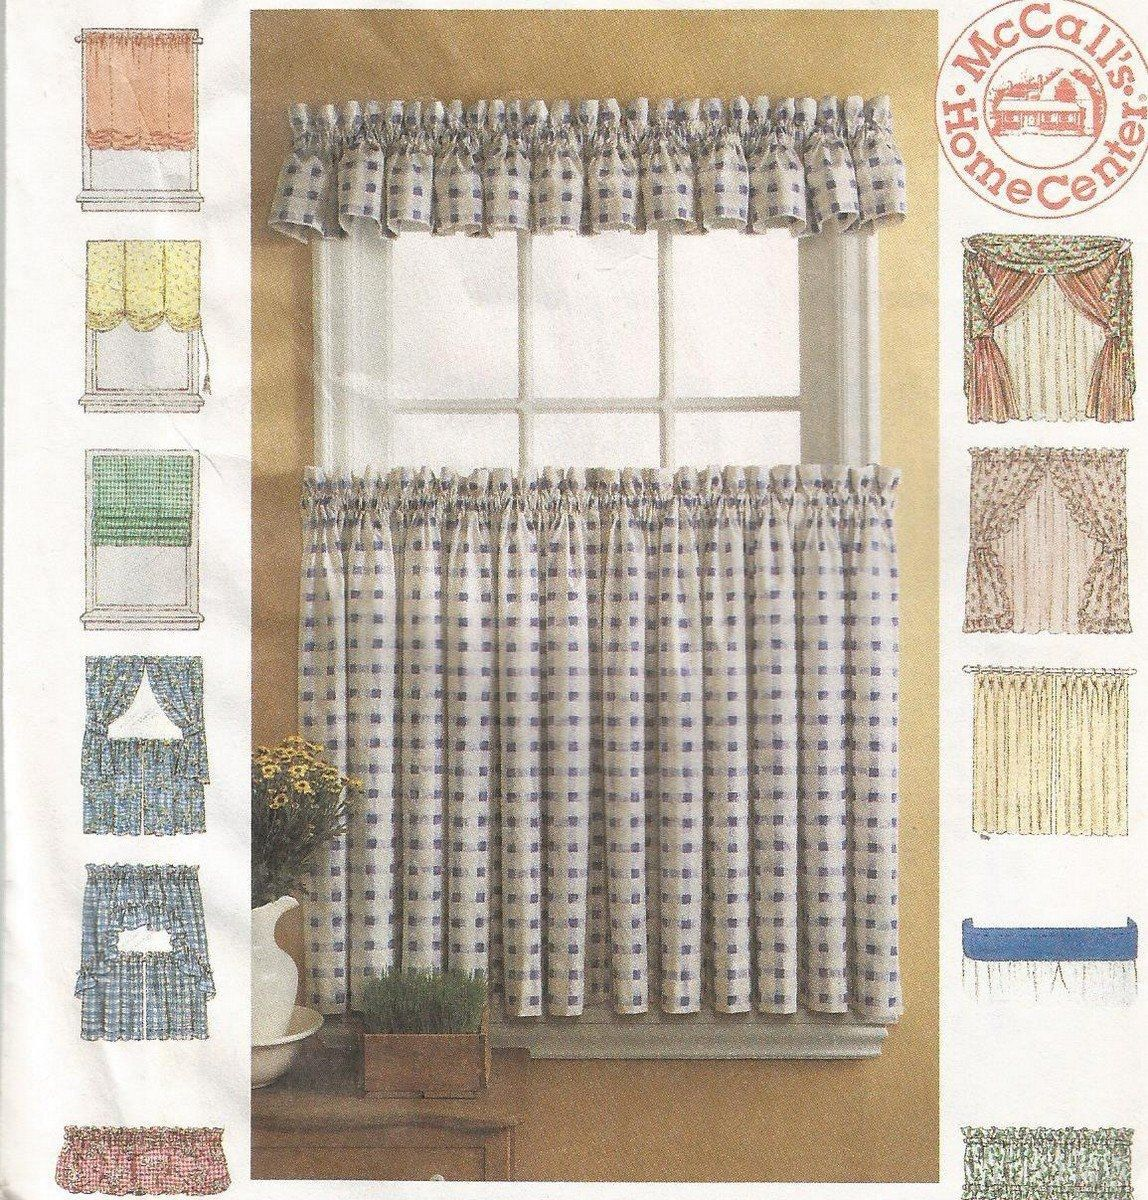 Curtain Sewing Patterns Mccalls 8492 Curtain Pattern Drapes Window Shades Crafts Seasonal Curtain Patterns Pattern Draping Mccalls Sewing Patterns